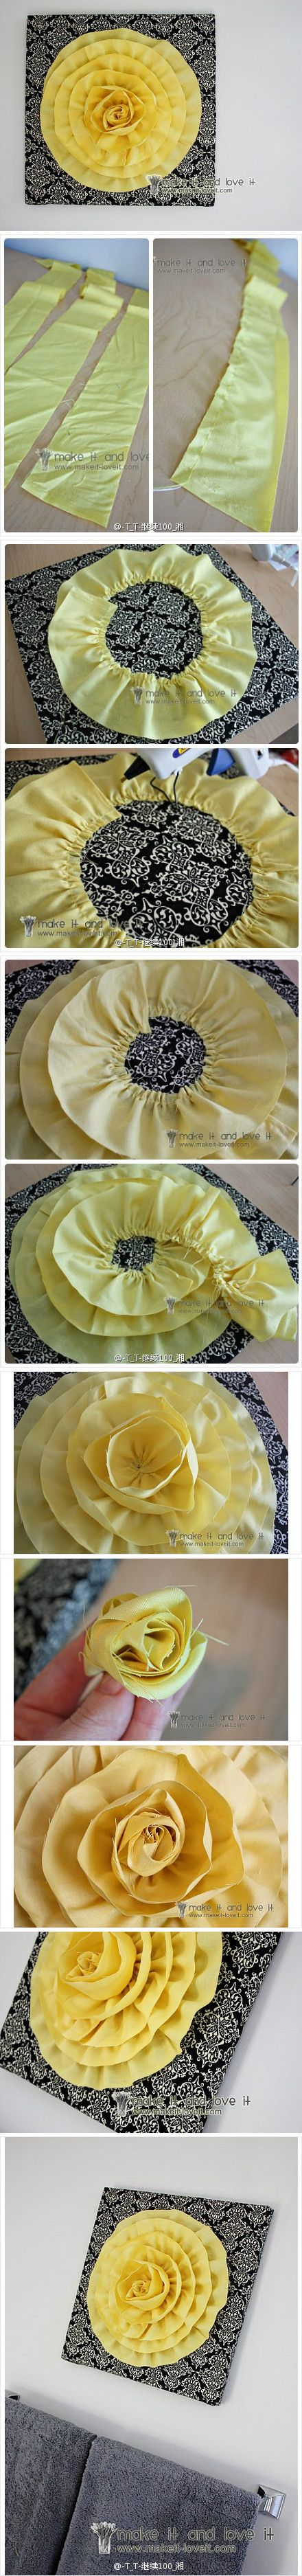 LOVE this!!!! Now I just need to learn to sew in circles...Wall Art, Clothing Flower, Wall Hanging, Fabrics Flower, Flower Crafts, Diy Tutorial, Paper Flower, Flower Decor, Teen Crafts